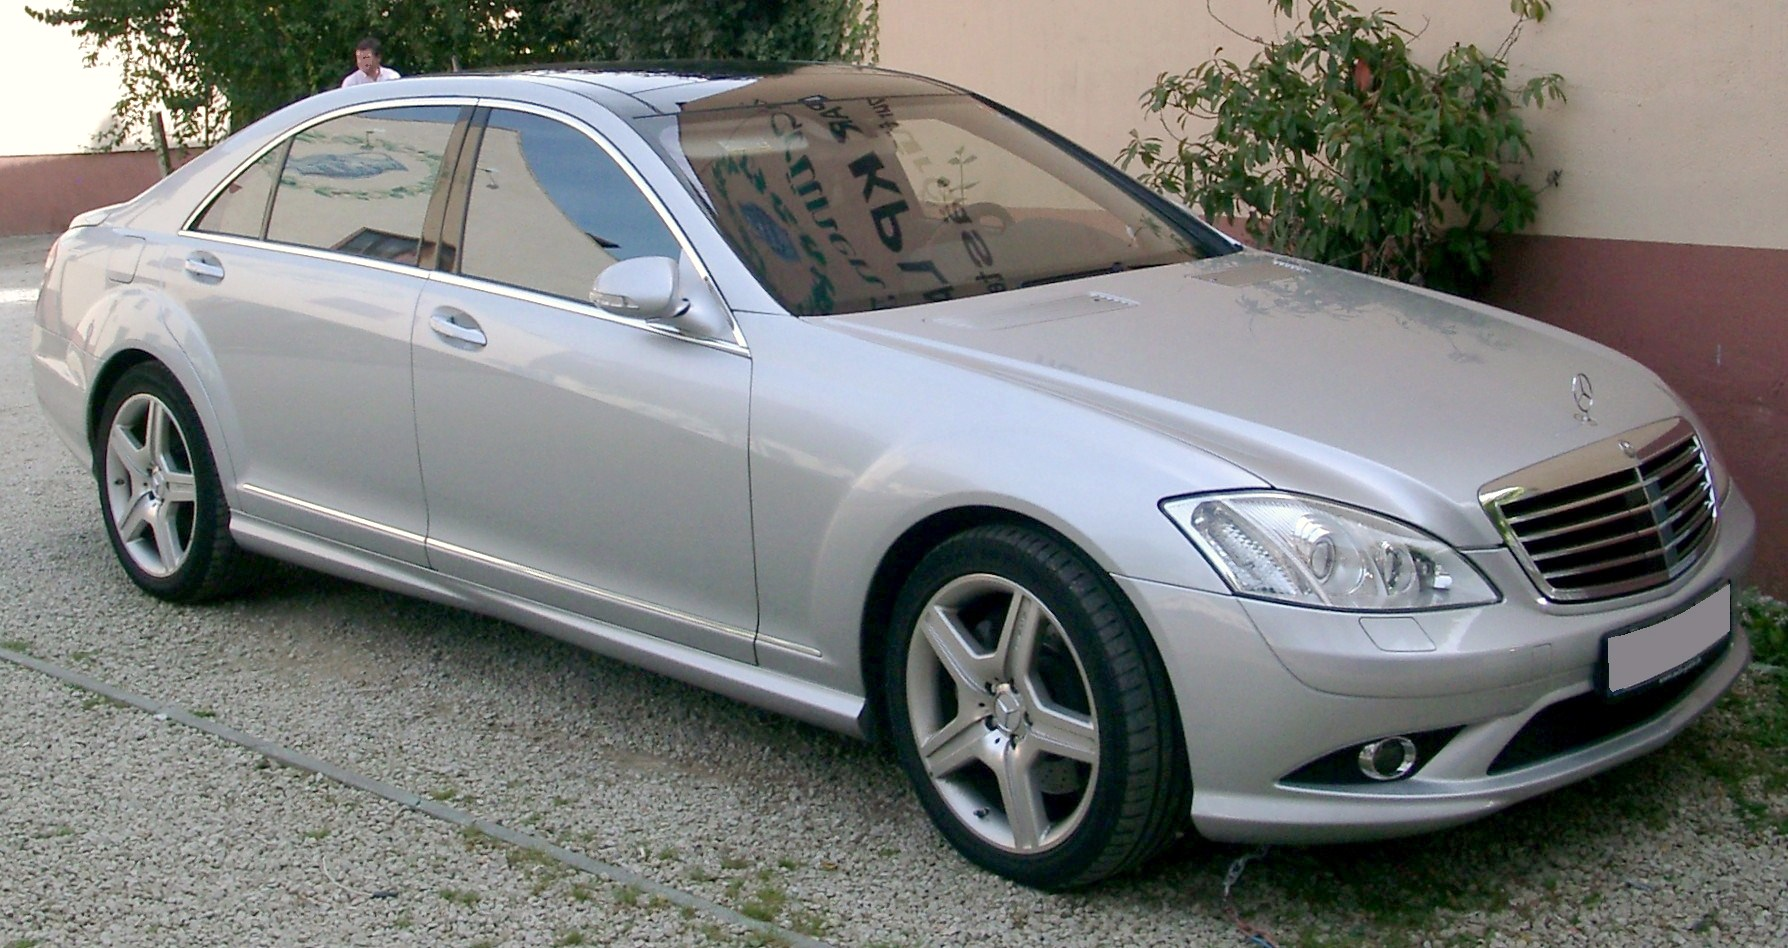 file:mercedes benz w221 front 20070920 - wikimedia commons